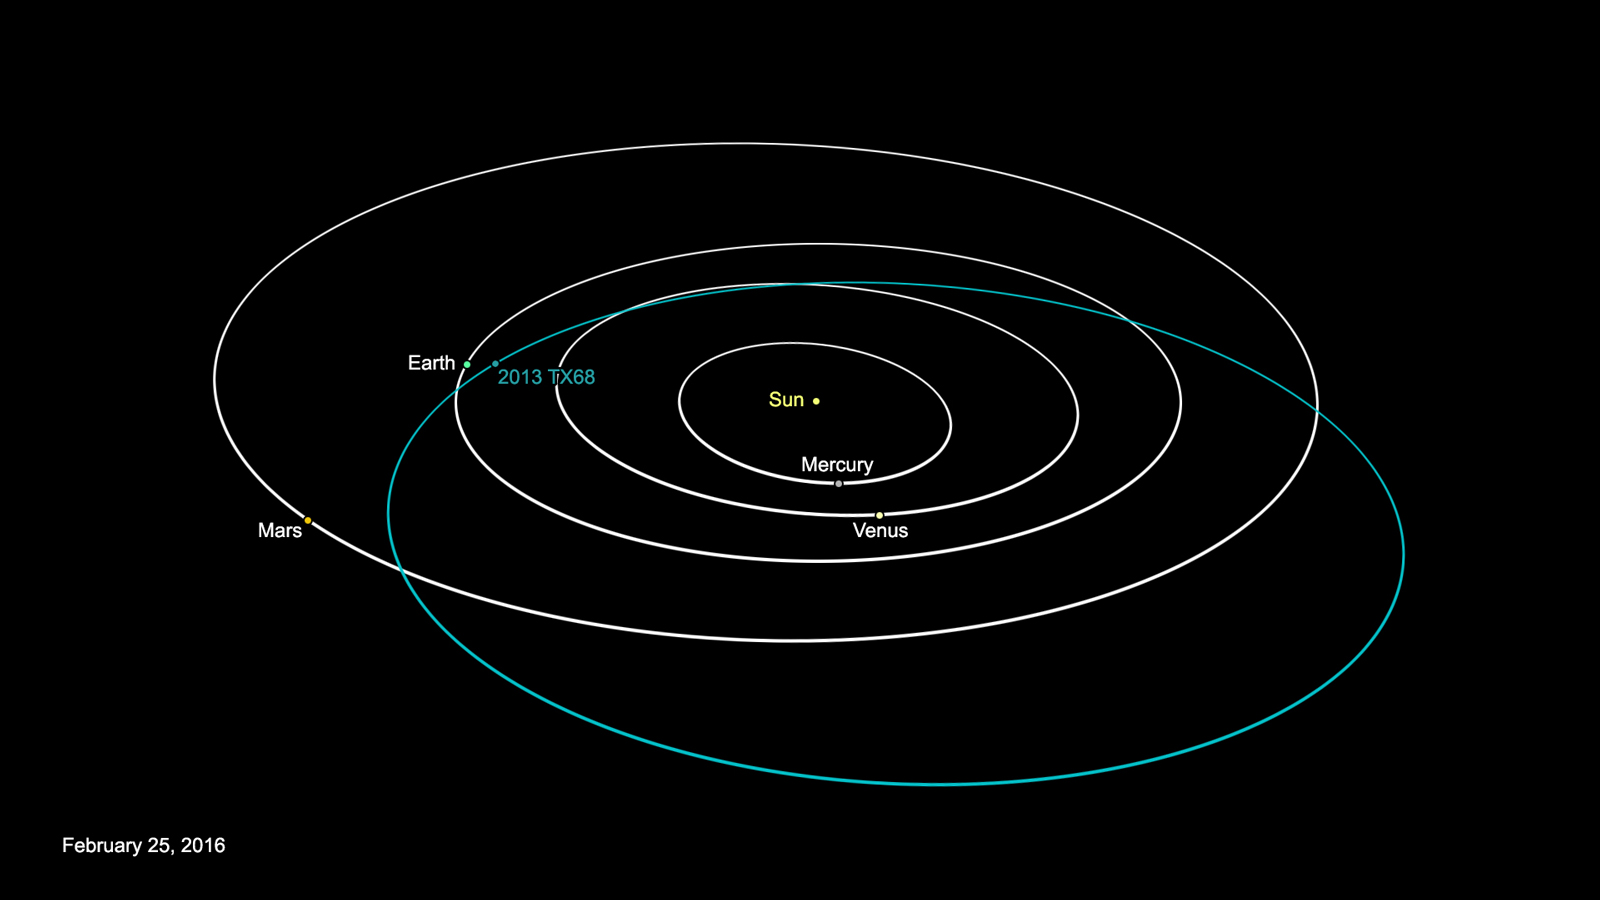 orbit of asteroid 2013 TX68